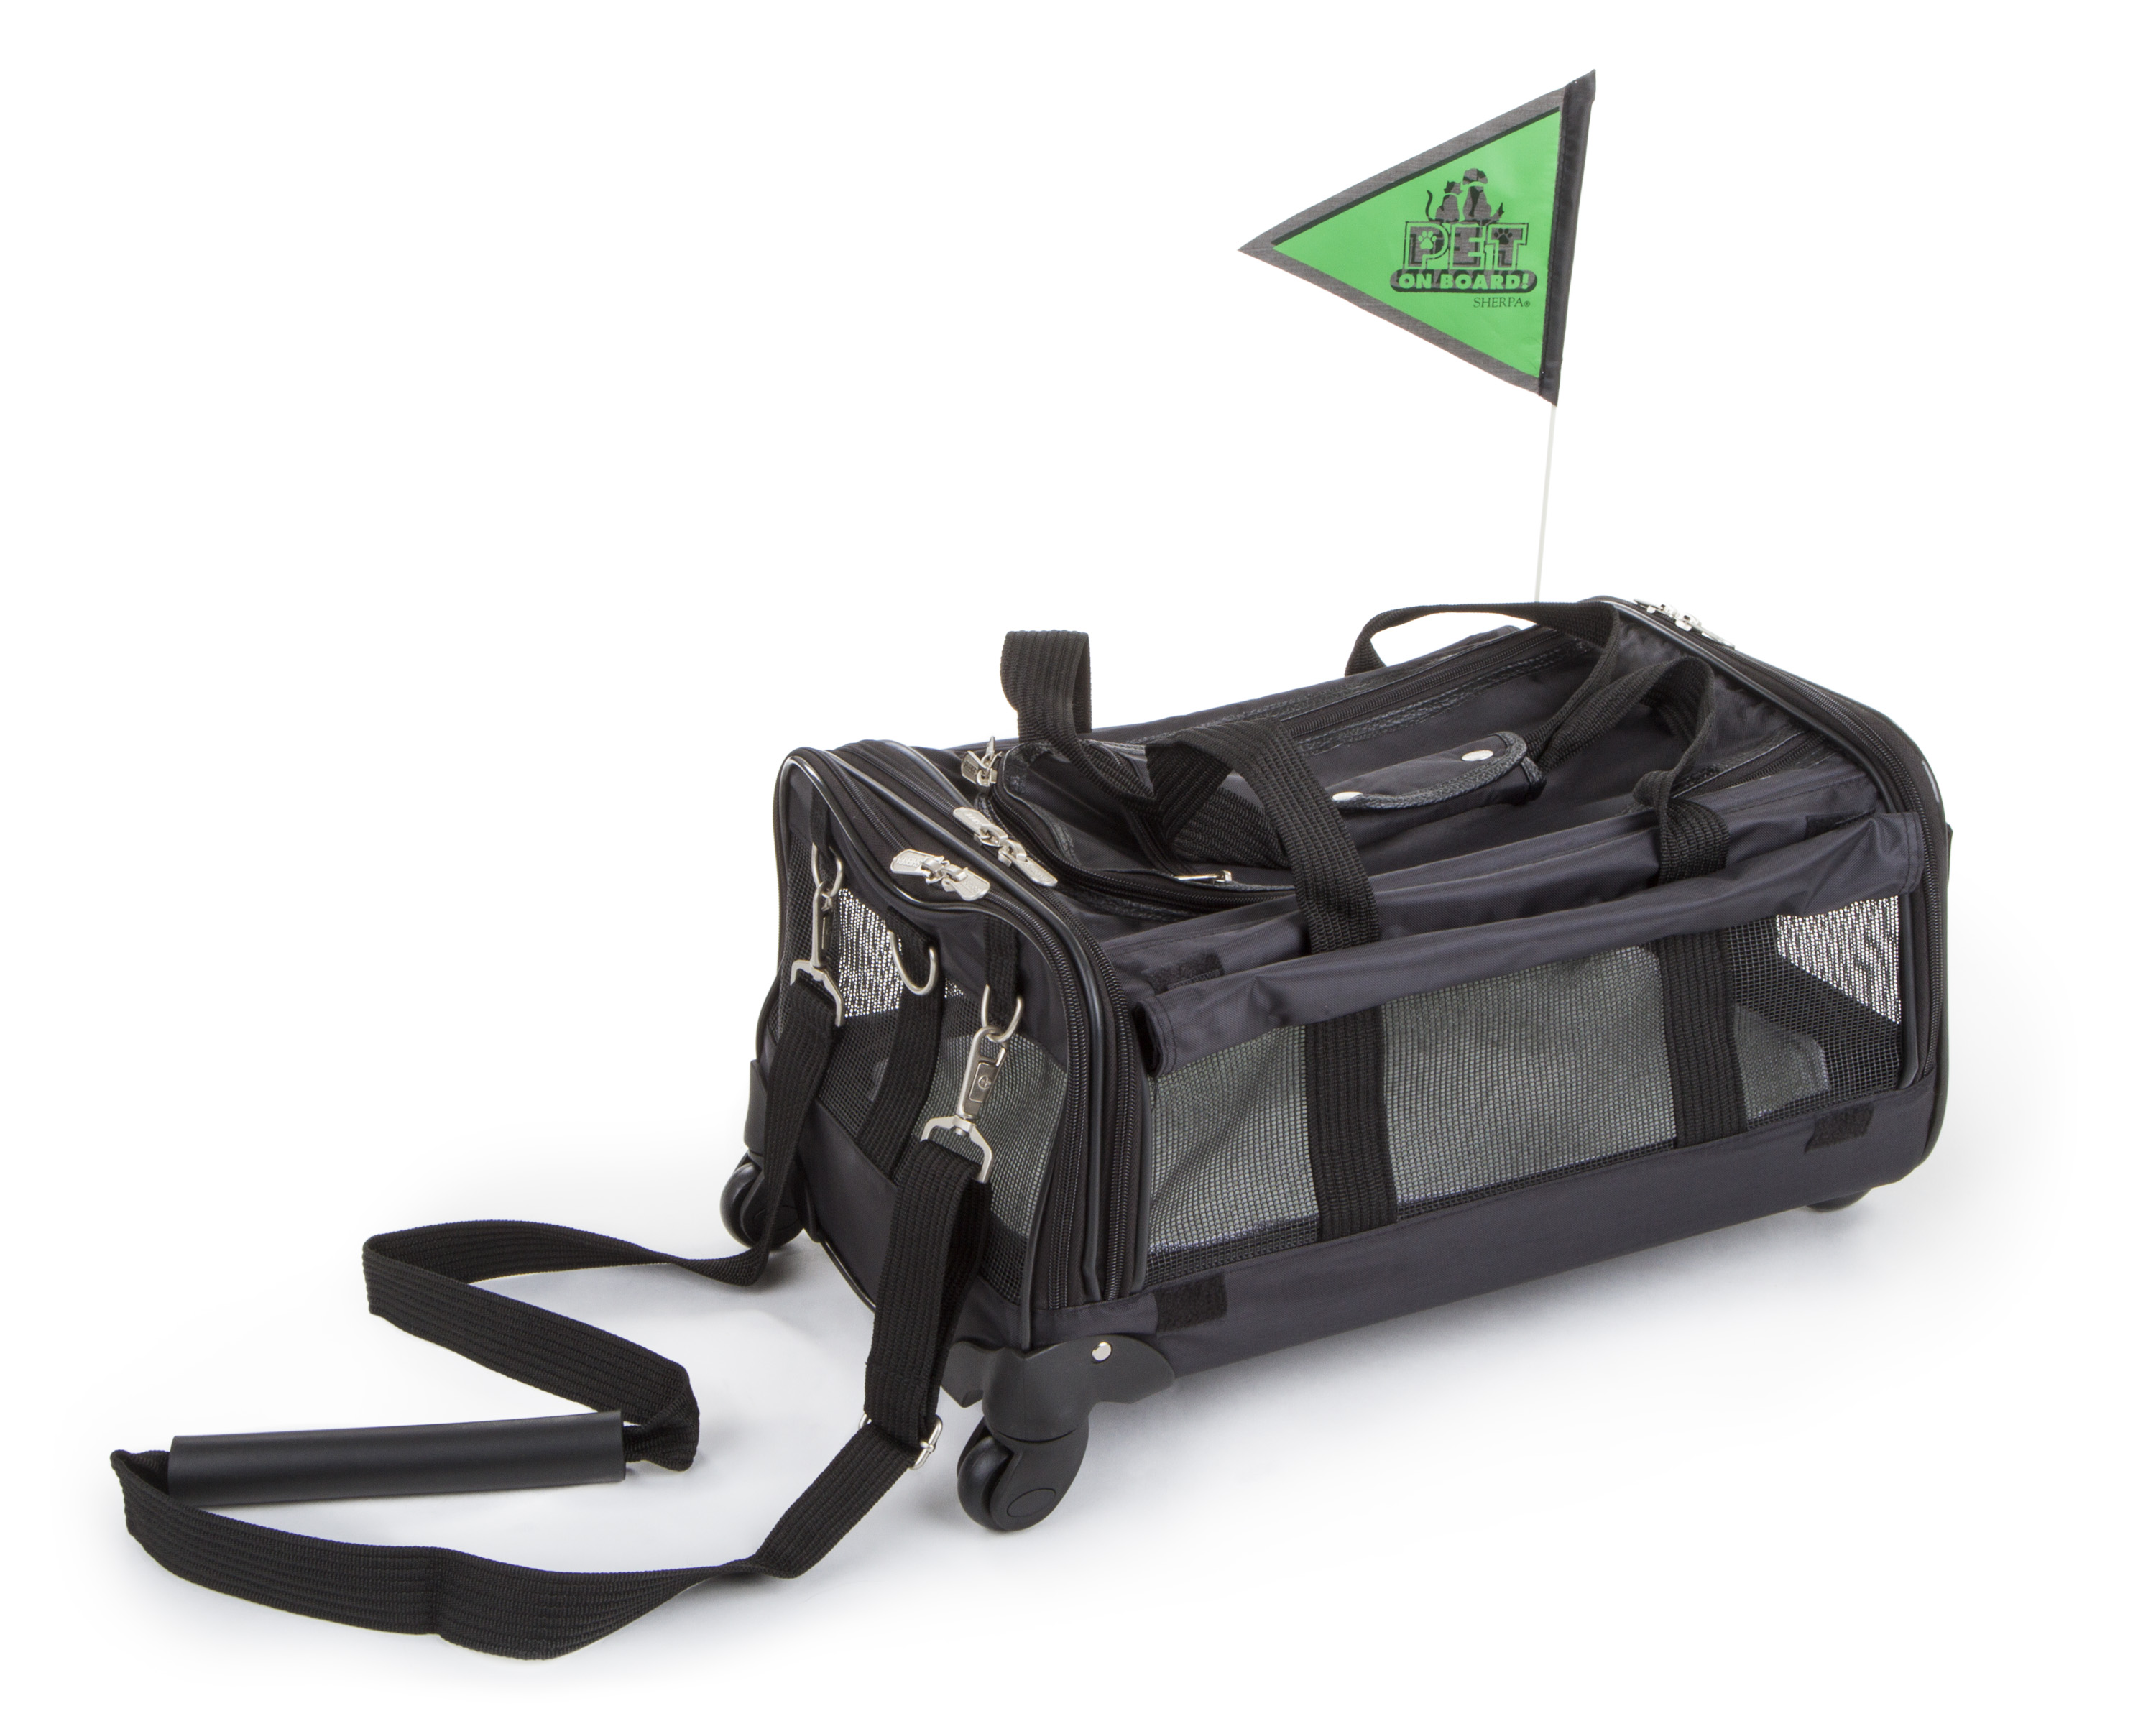 bb91c67bc Sherpa® Travel Ultimate On Wheels™ Airline Approved Pet Carrier, Large,  Black - Walmart.com